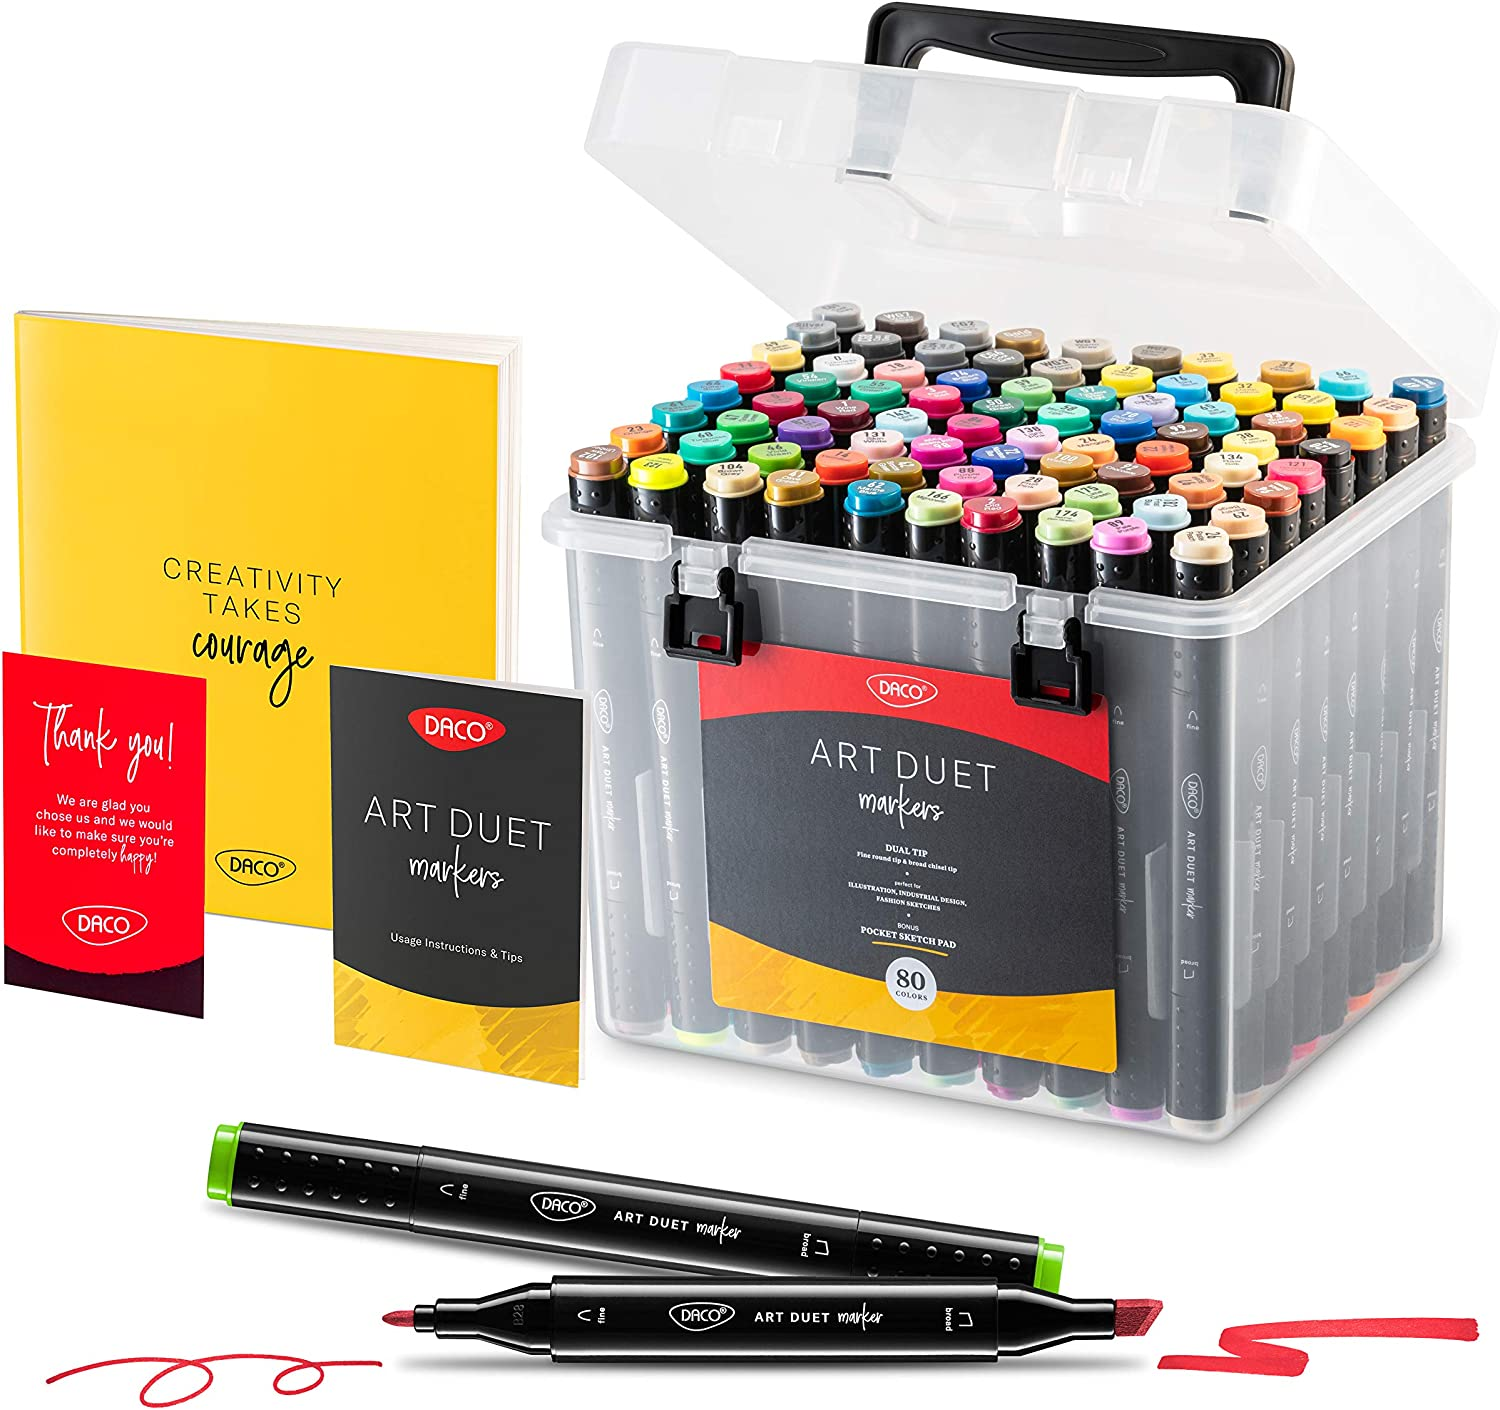 DACO Art Duet Alcohol Markers, Art Set of 79 Colors, 1 Blending Marker + 1 Sketch Pad, Travel-Friendly, Dual Tip Professional Markers for Artists, Adult Coloring Books, Sketching, Drawing, Card Making